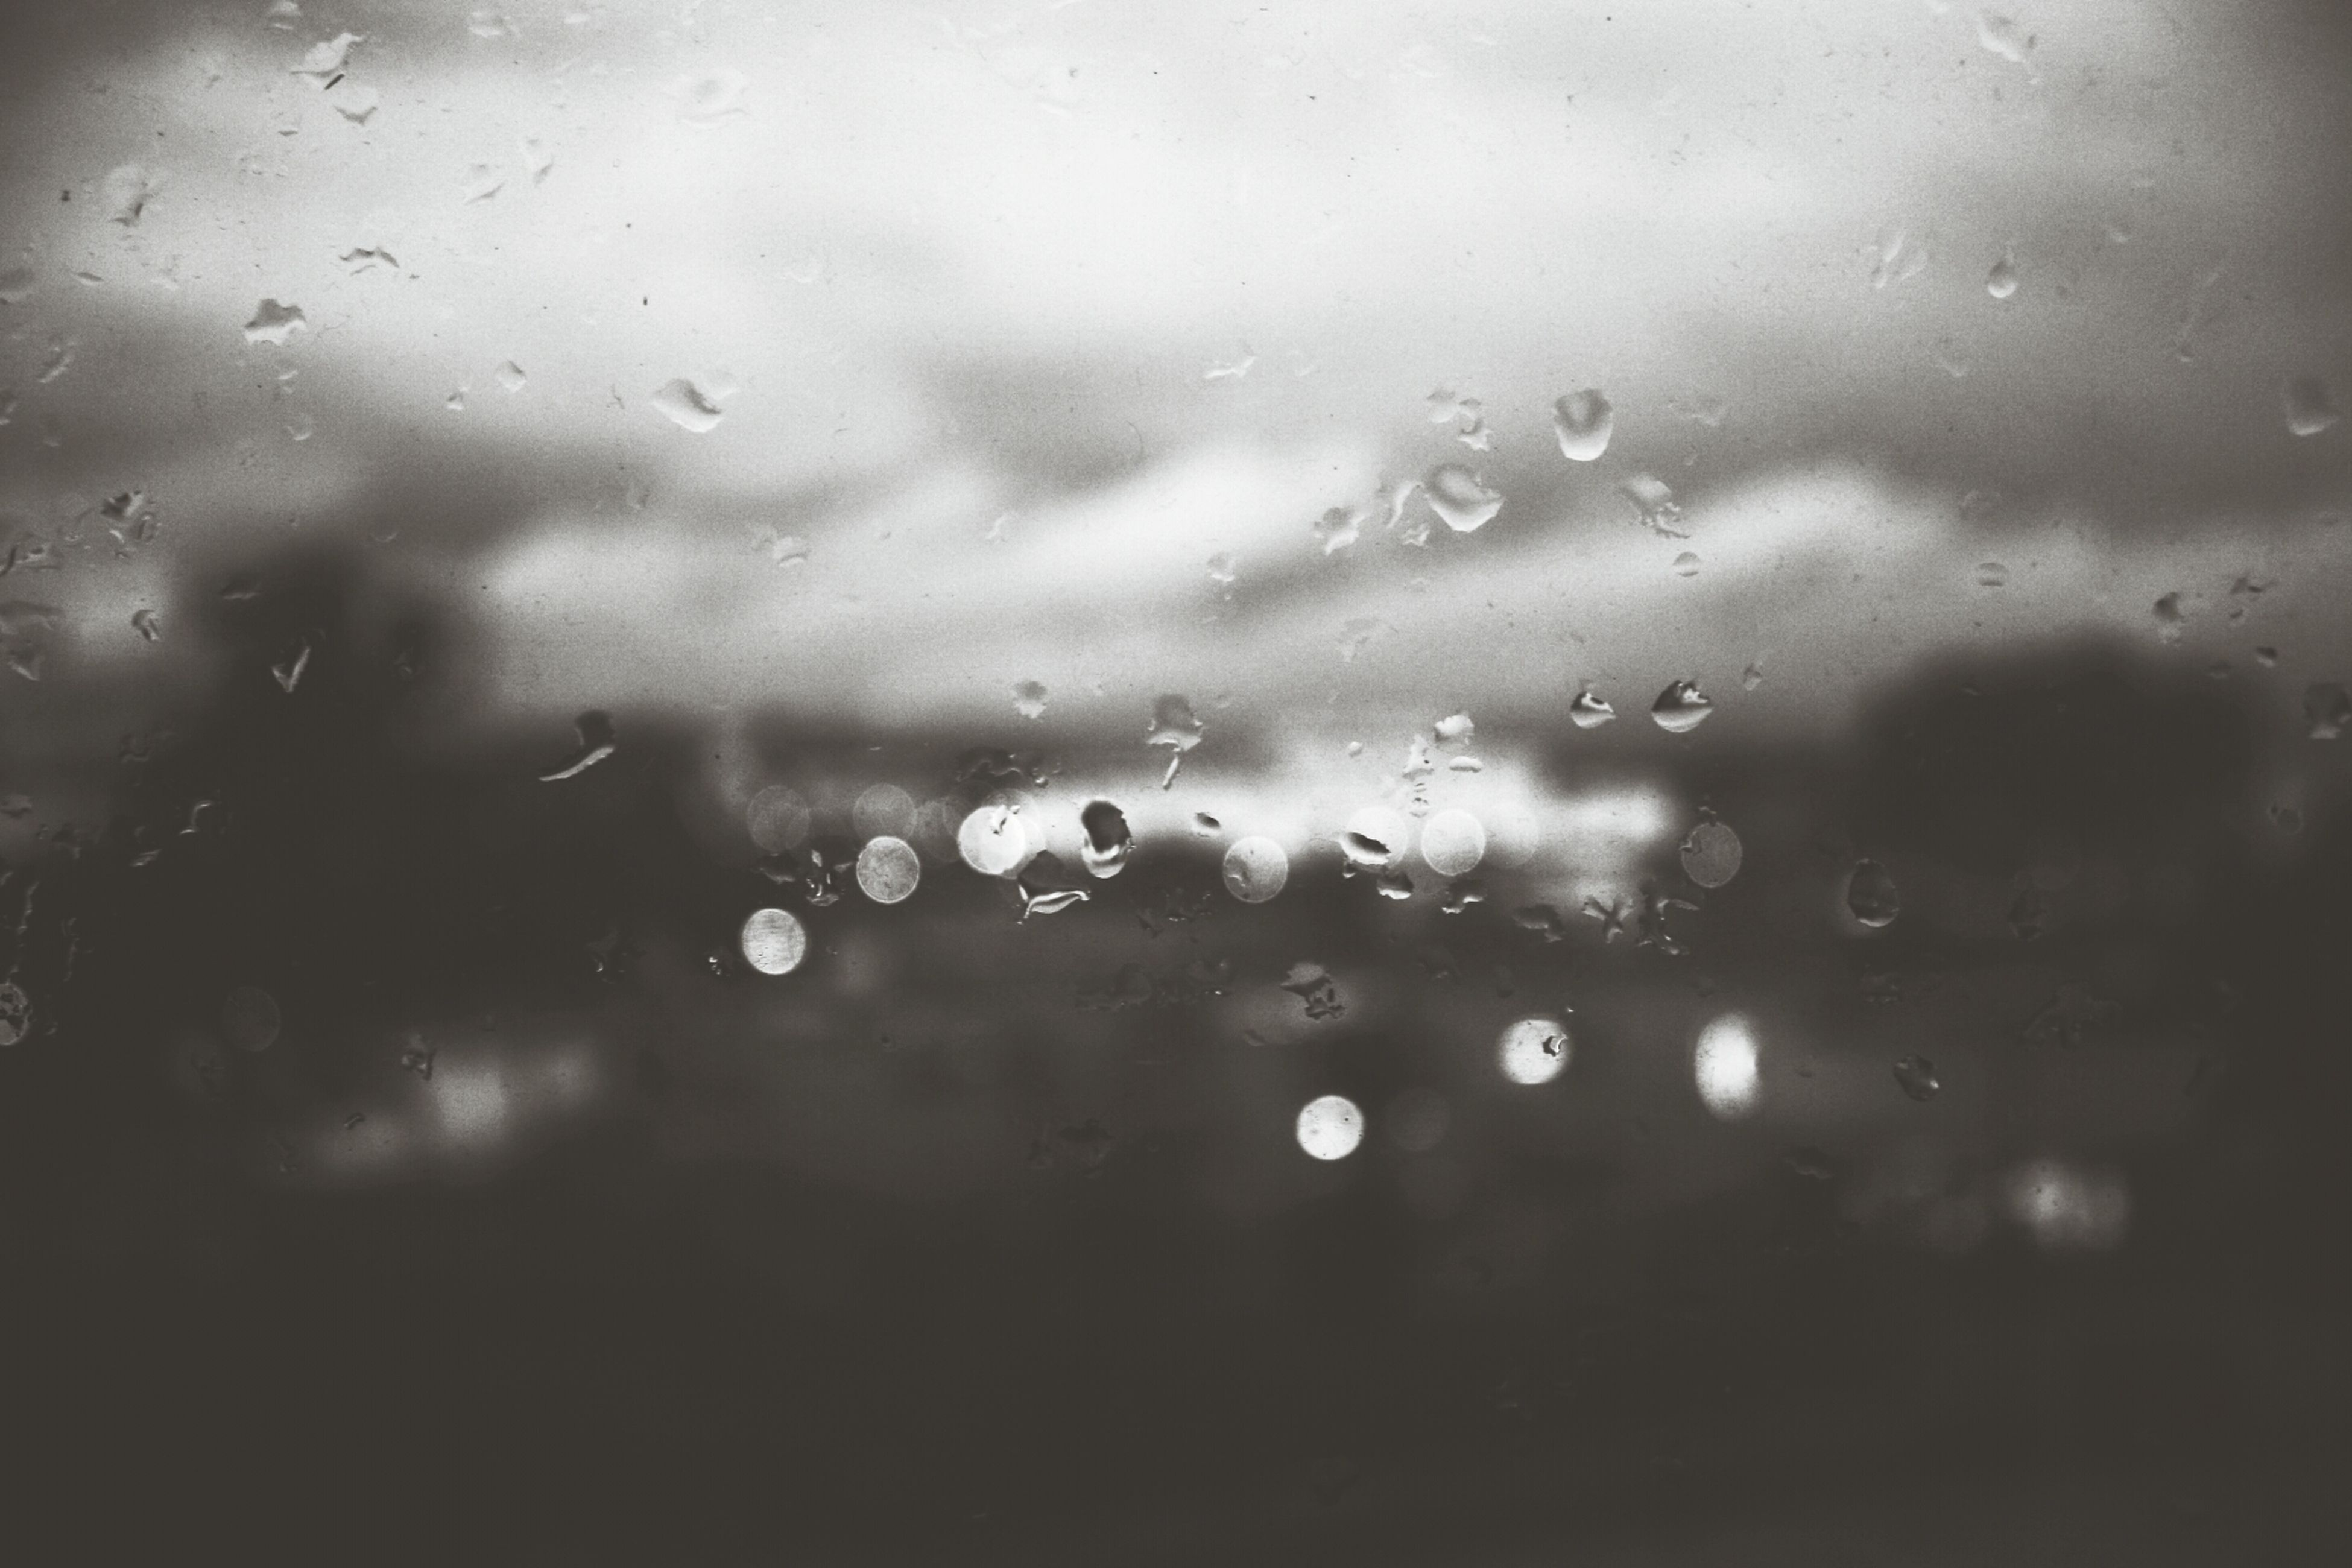 drop, wet, water, window, rain, transparent, indoors, raindrop, glass - material, weather, full frame, backgrounds, glass, focus on foreground, season, water drop, droplet, sky, close-up, nature